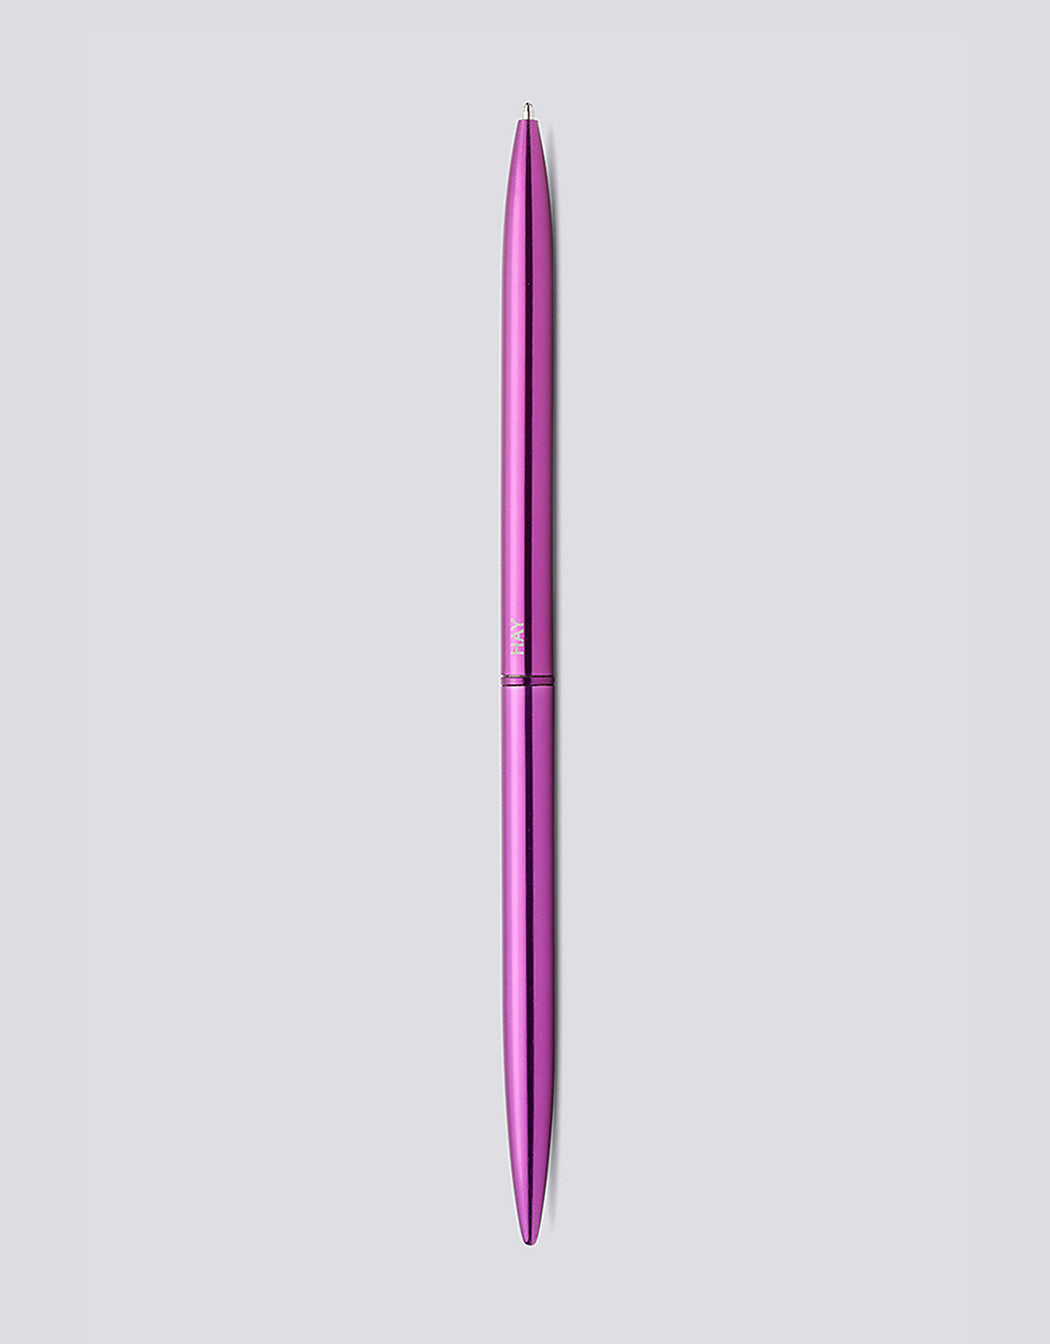 Metallic Purple Bullet Pen by HAY. Available at Easy Tiger Goods Toronto.